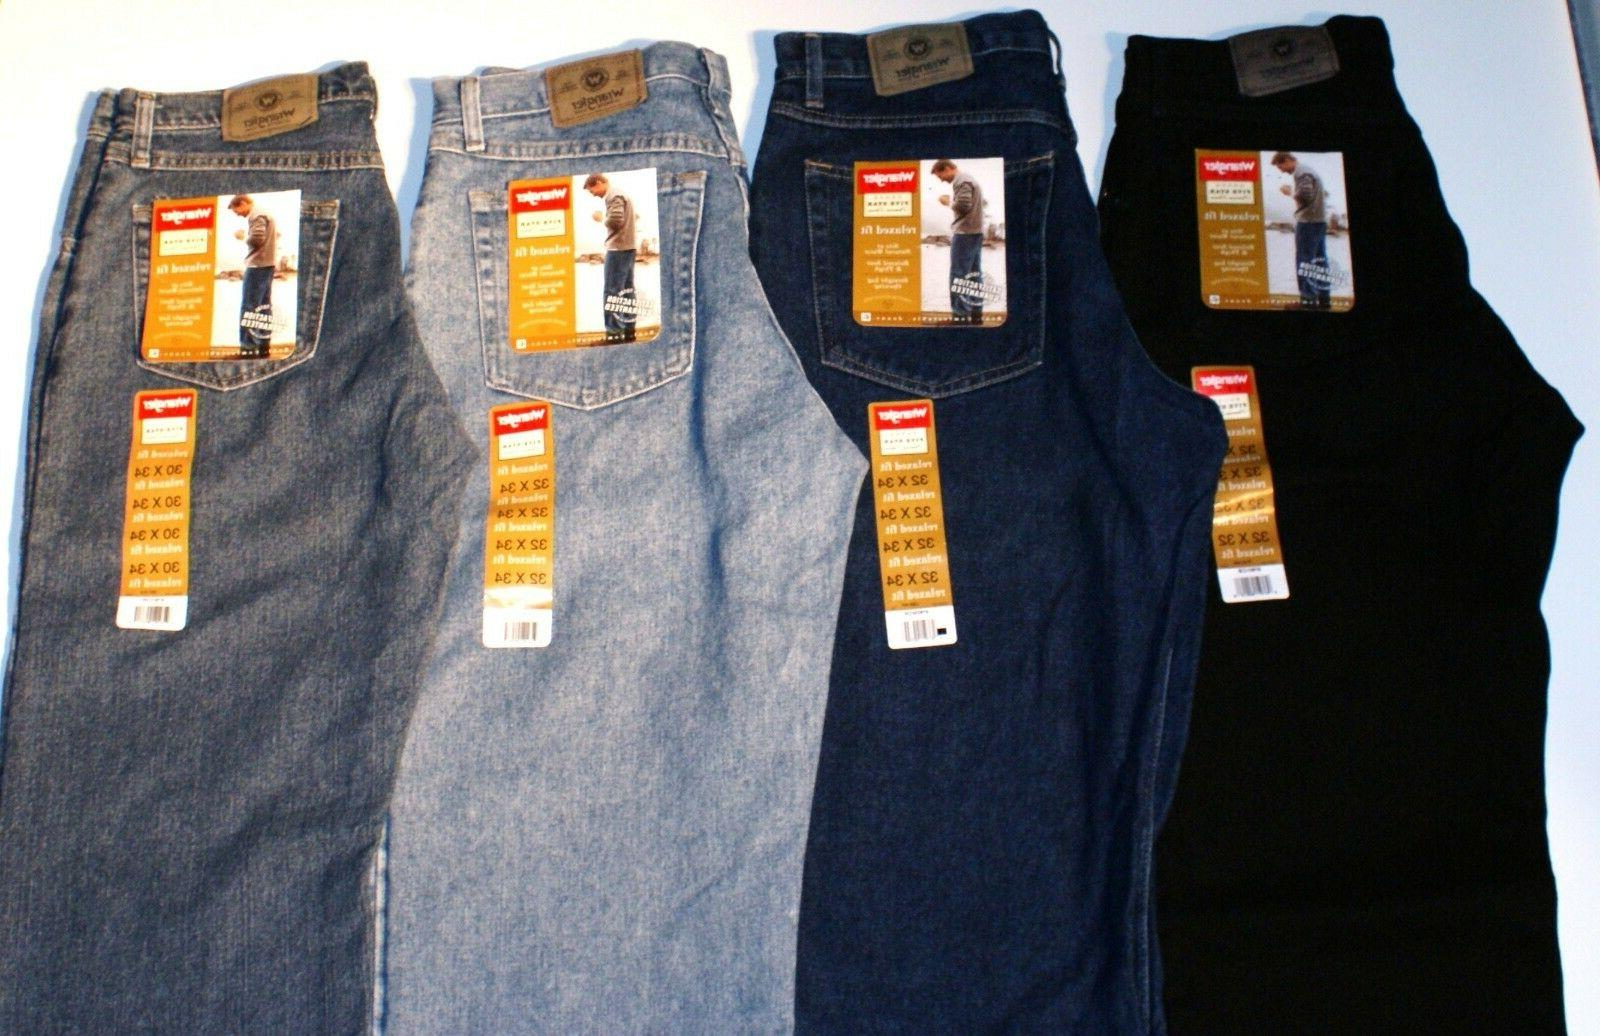 New Fit Jeans Tall Sizes Available